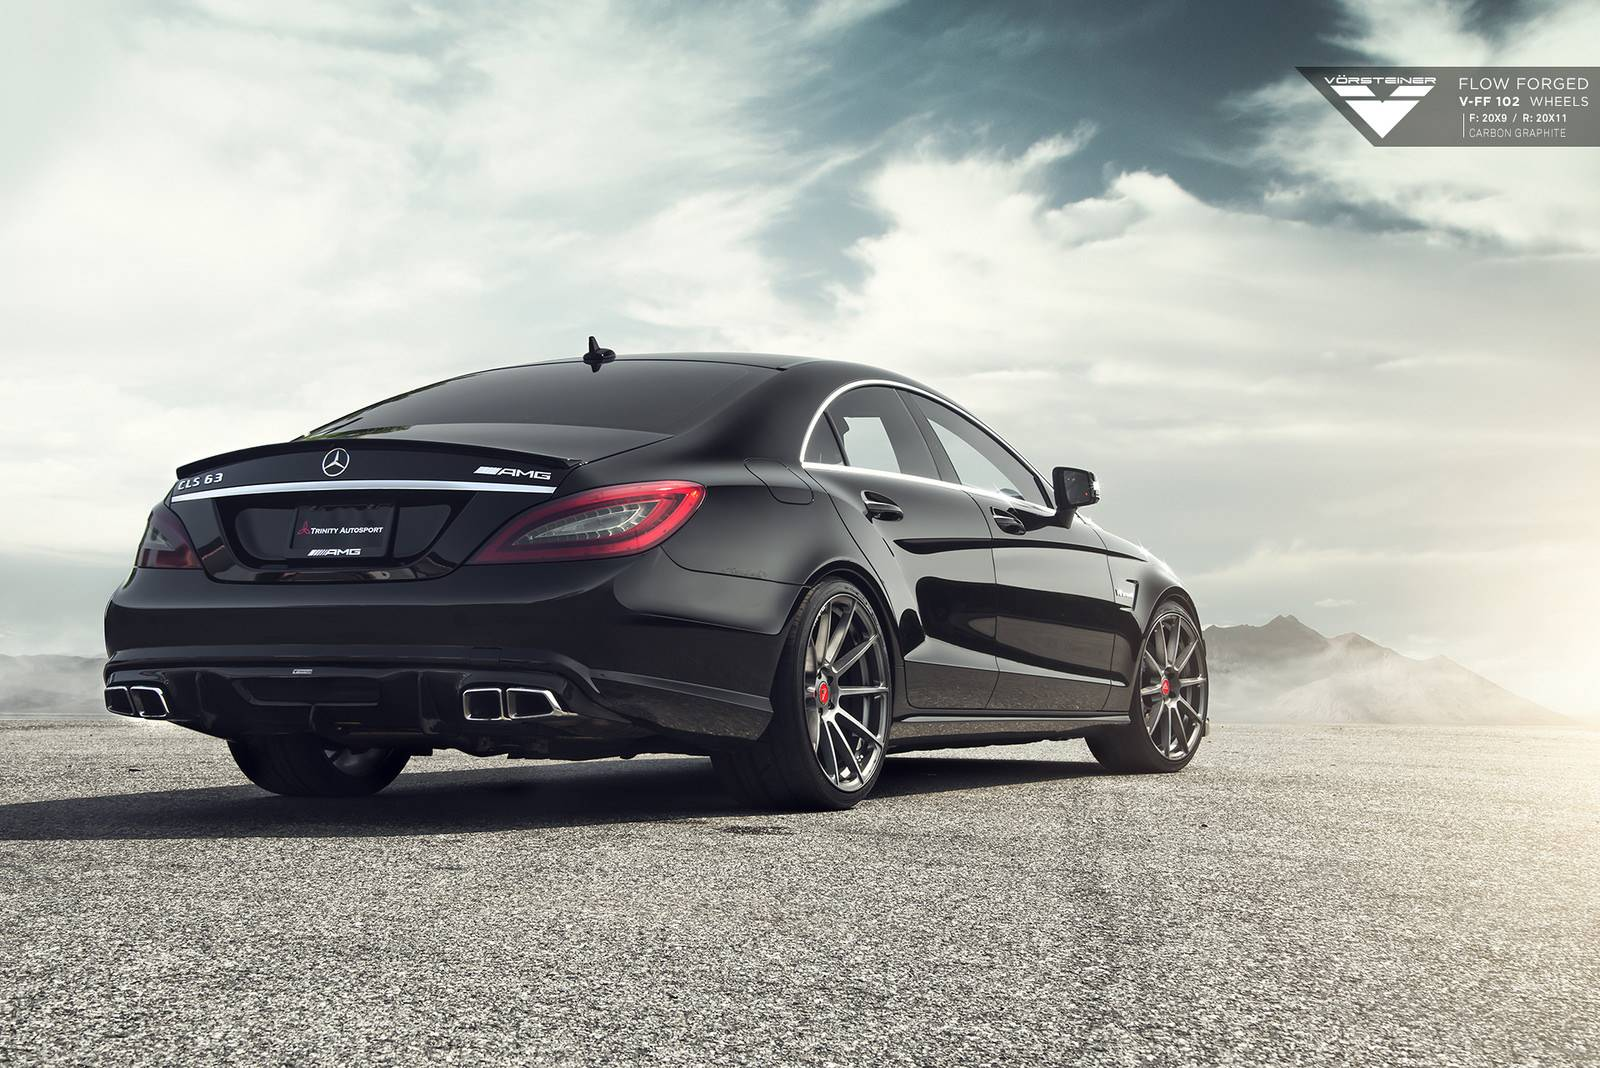 Mercedes benz cls63 amg stuns on vorsteiner wheels gtspirit for Amg wheels for mercedes benz